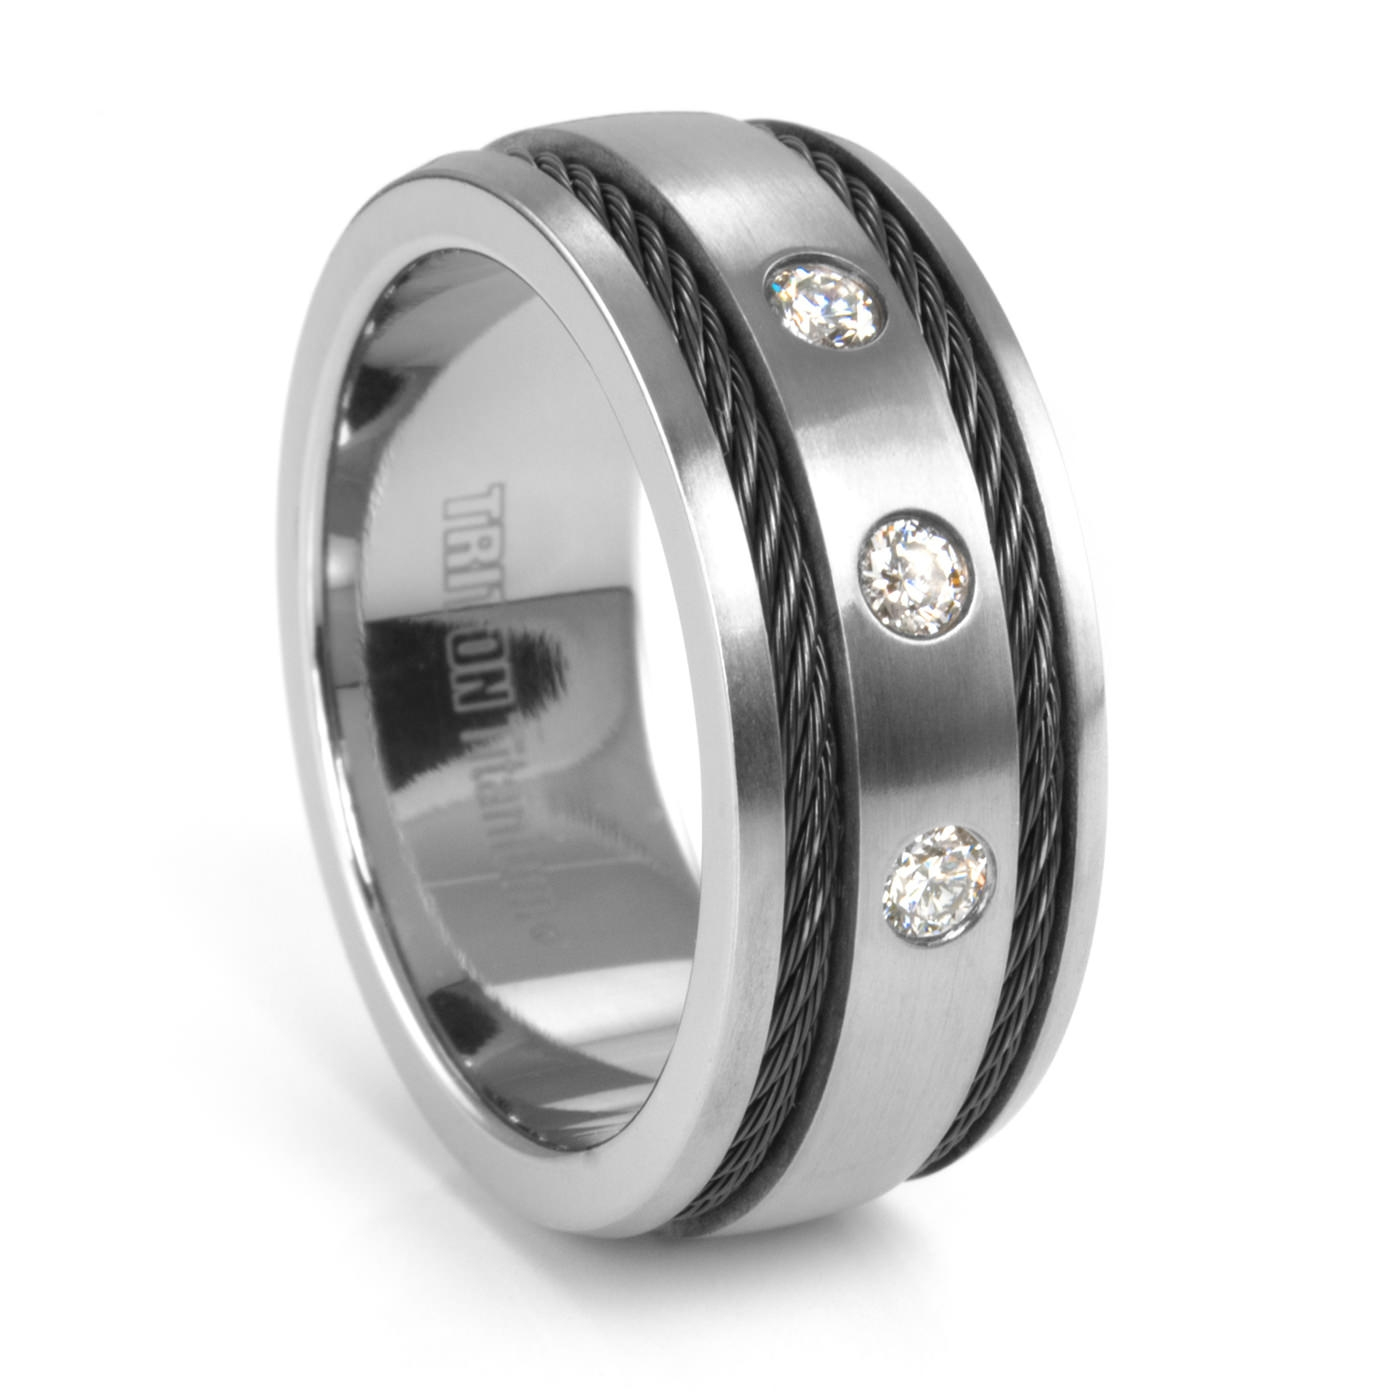 Fenton Men's Titanium Diamond Wedding Band – 9Mm – Triton Cable Ring Inside Titanium Wedding Bands For Men (View 3 of 15)